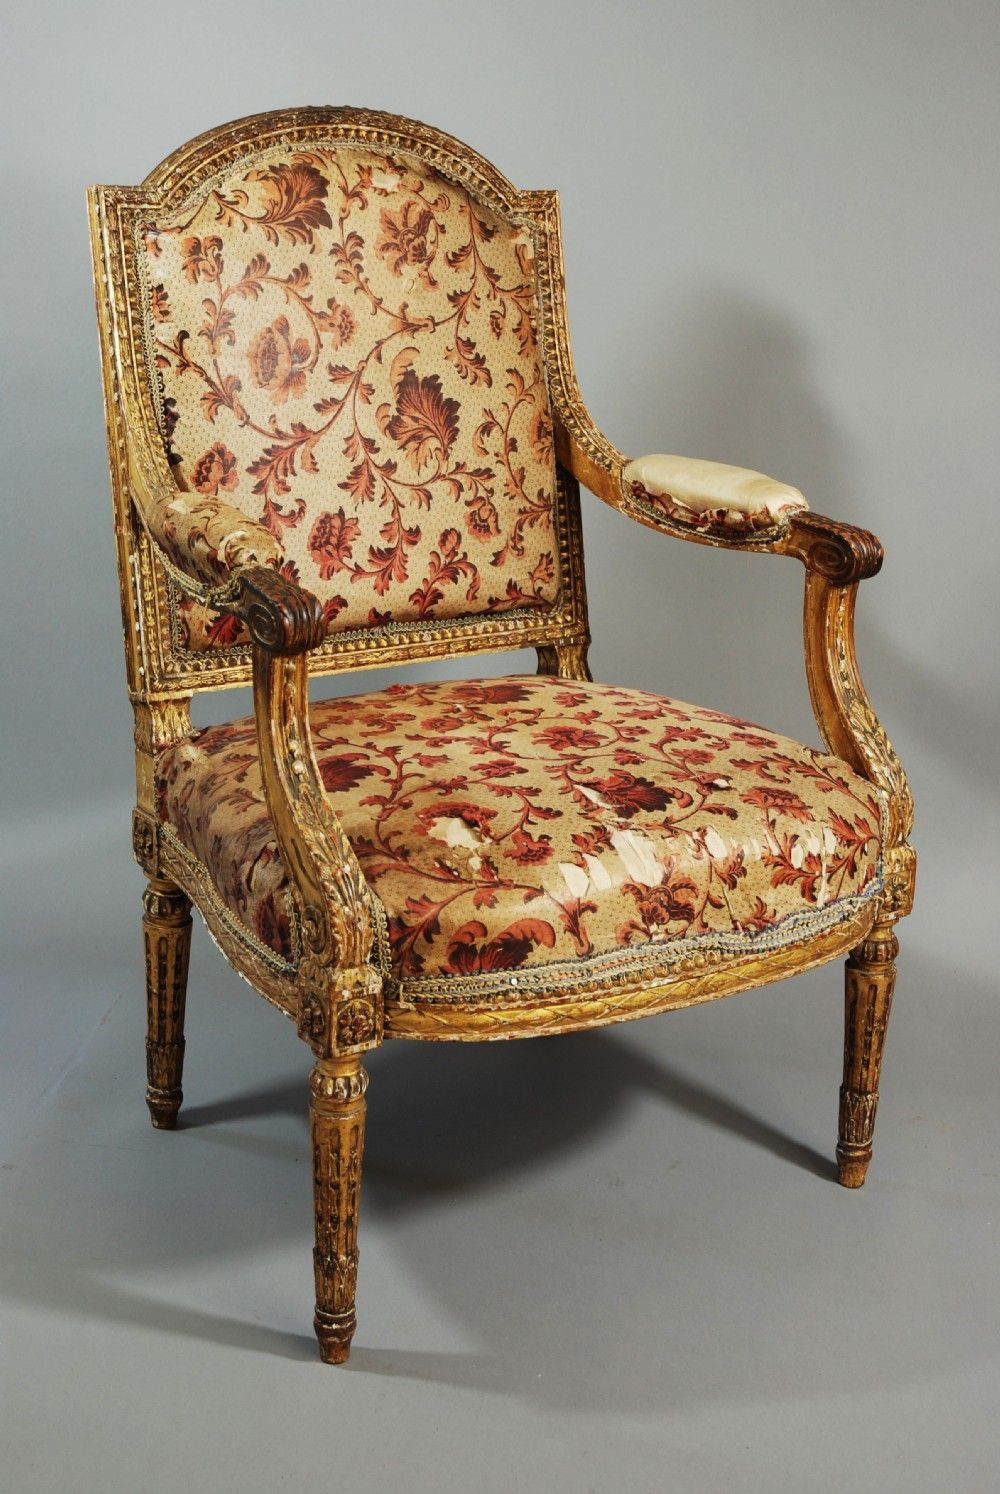 Mid 19thc French fauteuil (open armchair) from the Stephen